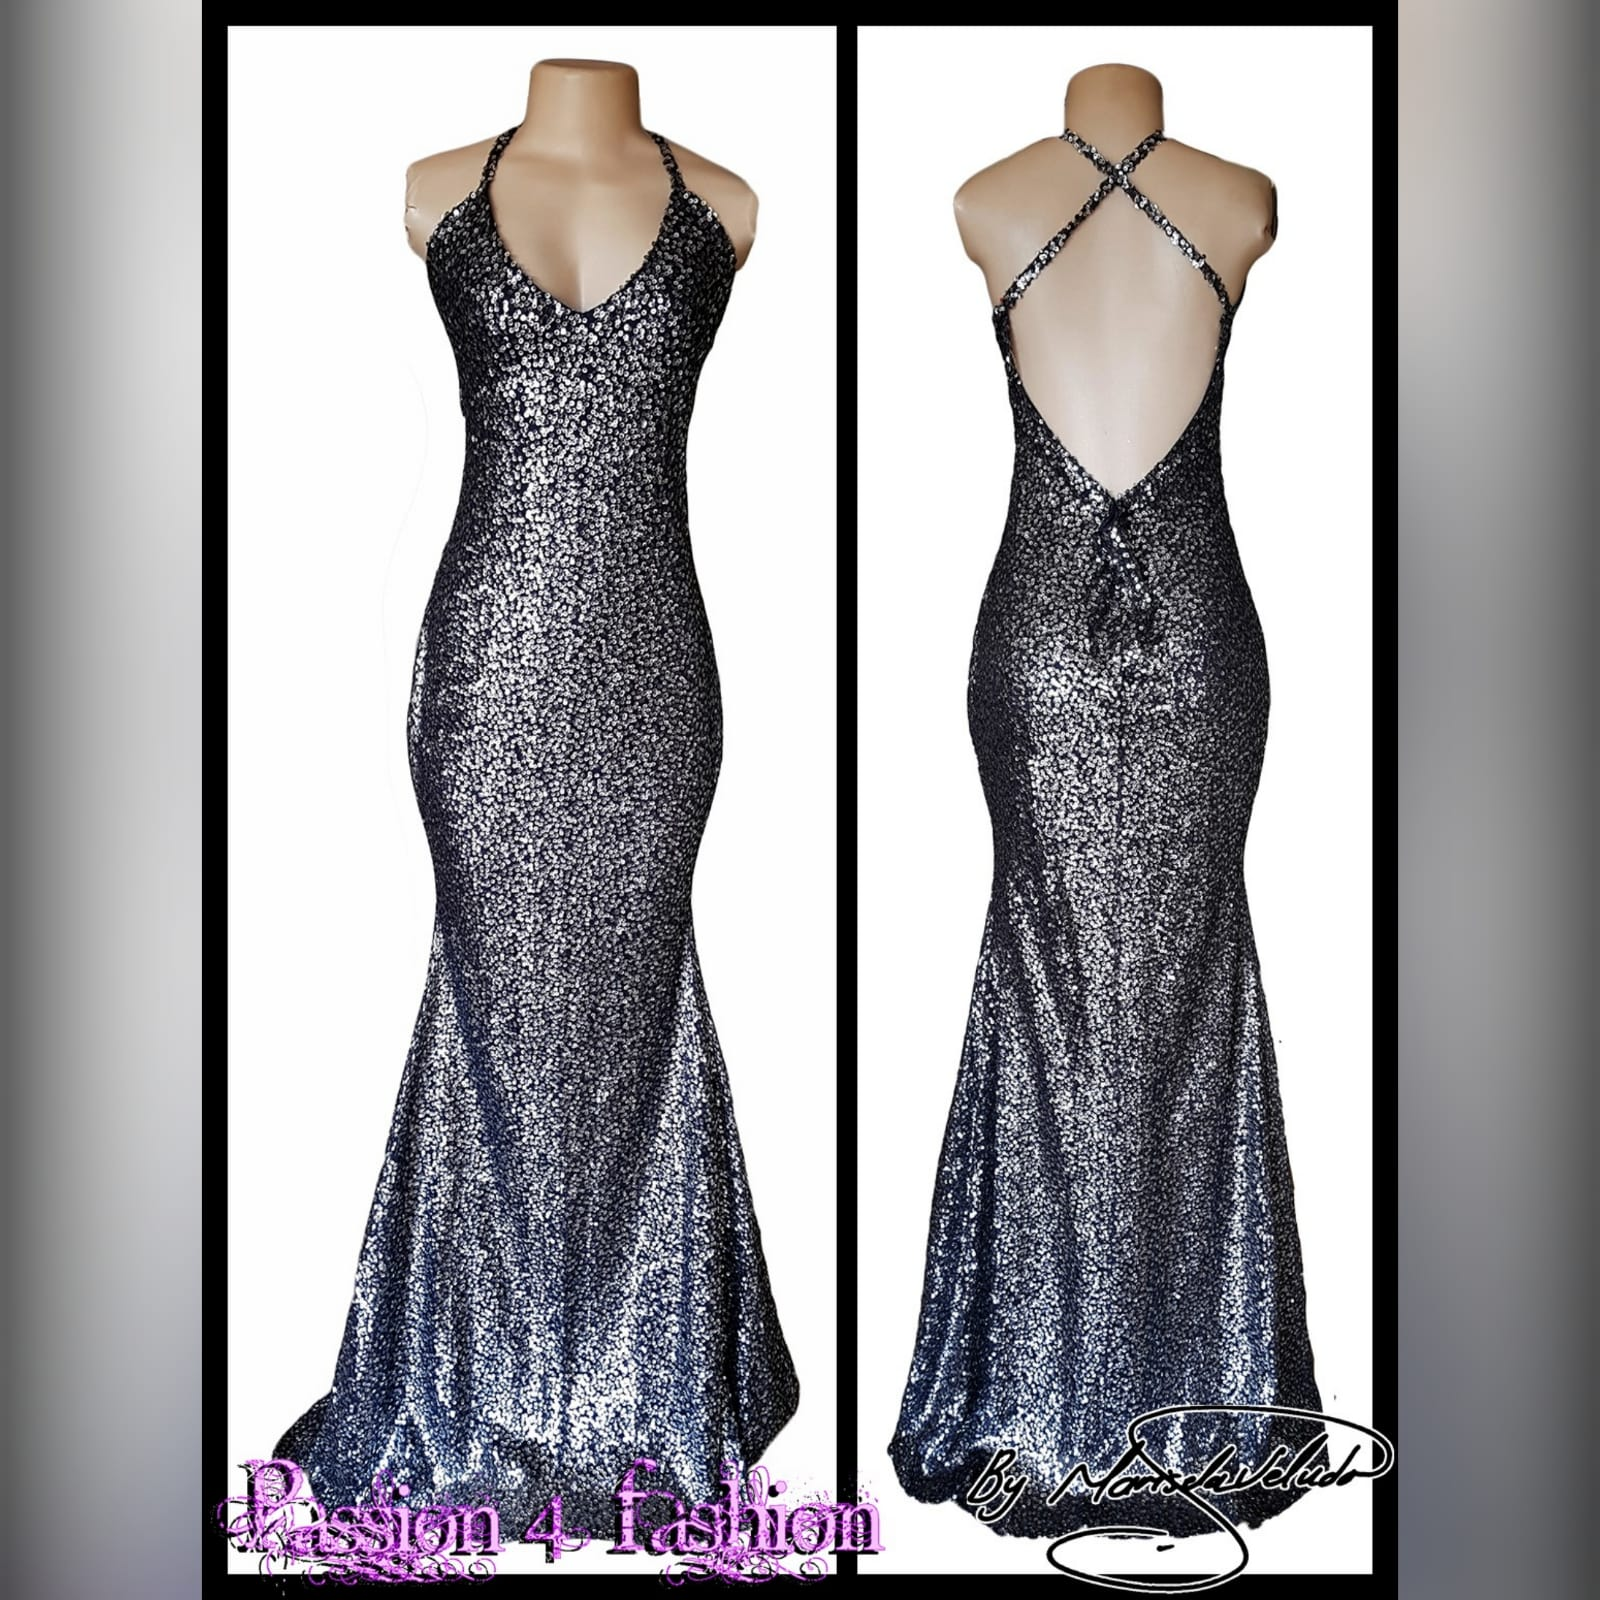 Charcoal fully sequins long evening dress for end year party 3 charcoal fully sequins long evening dress for end year party, with a low v open back and crossed shoulder straps.